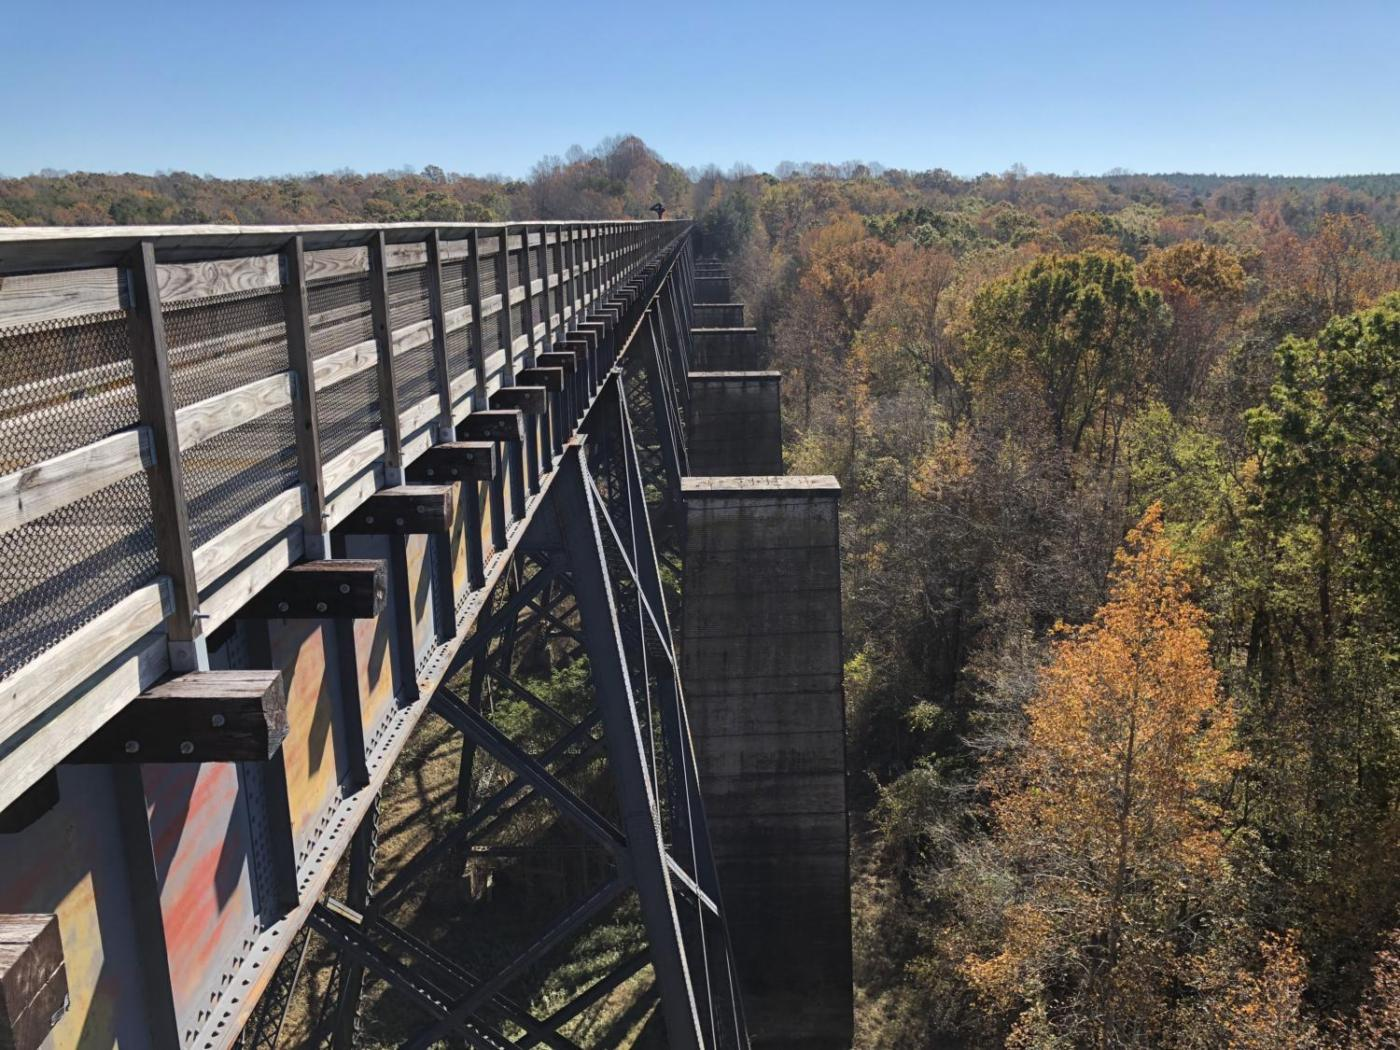 The High Bridge Trail